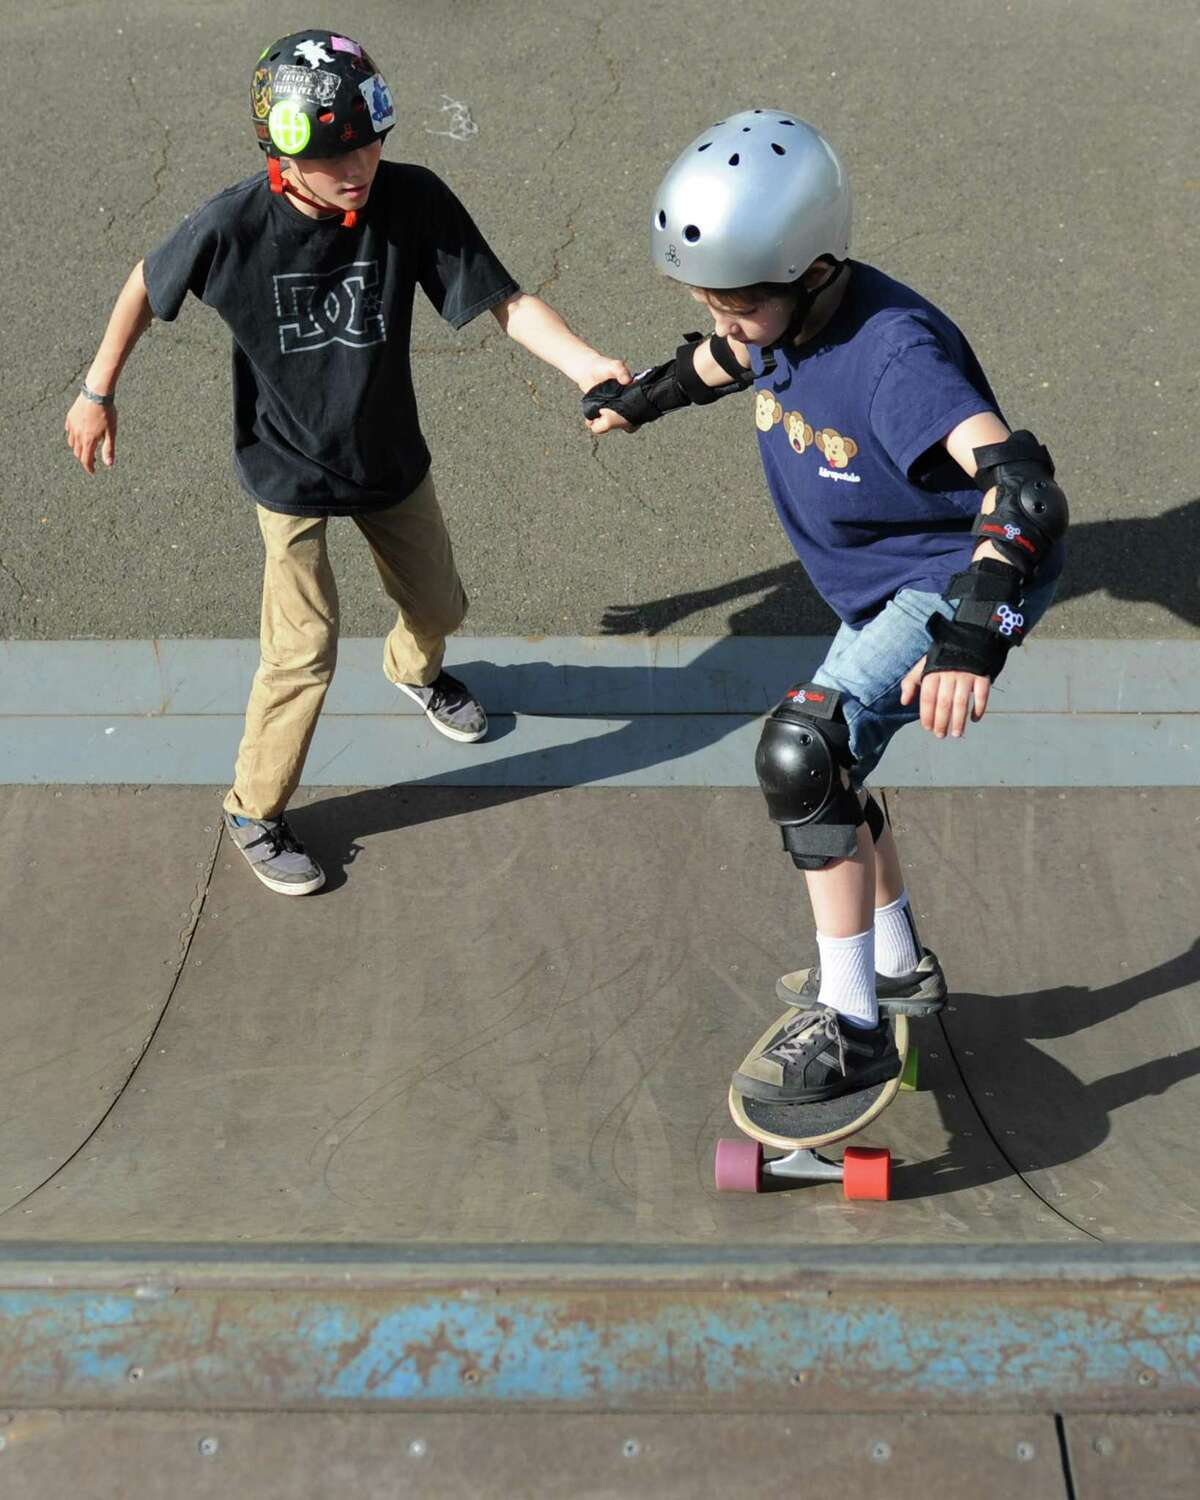 The Greenwich Skate Park, seen here in 2015 as Cos Cob resident Martin Curley, 14, helps out Charlie McLeod, 10, enjoy it, will reopen this weekend on a limited basis including with hard caps on the number of skaters who can use it at once.